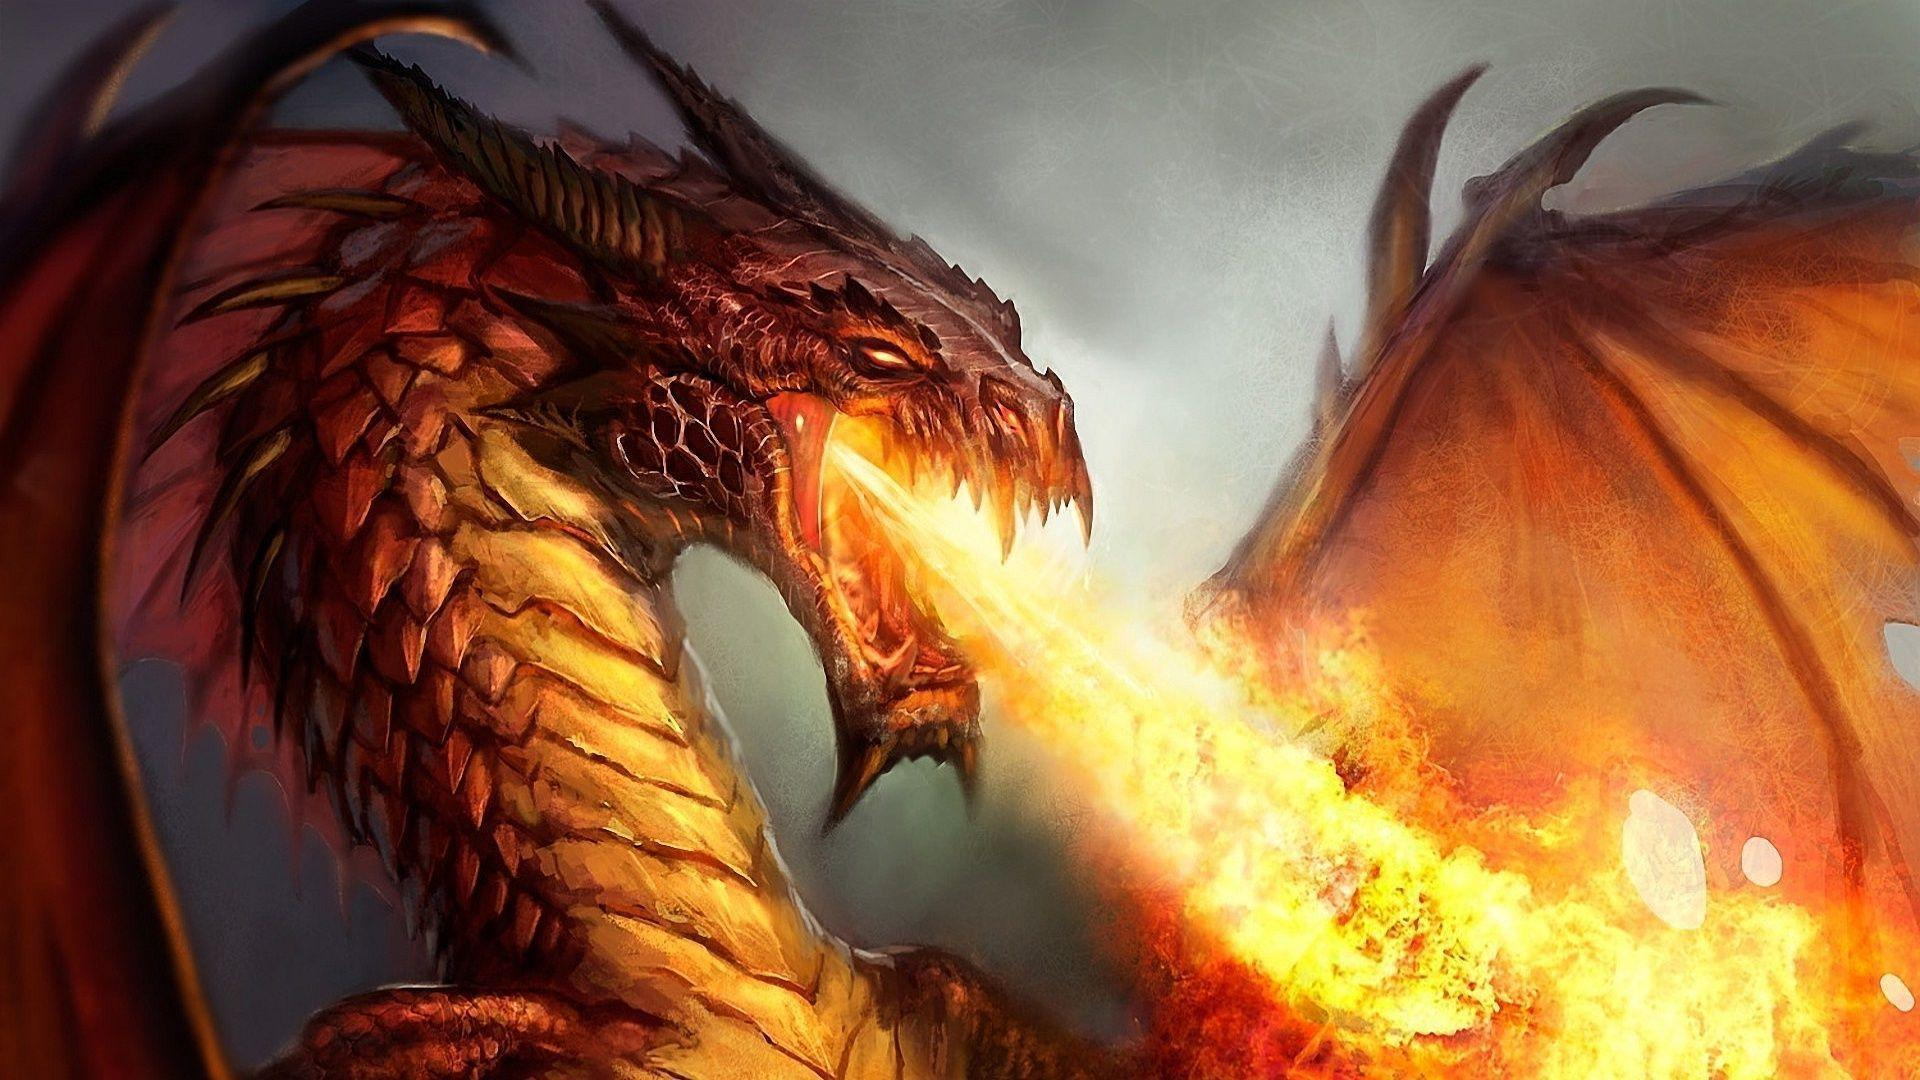 dragon wallpaper widescreen high resolution - photo #39